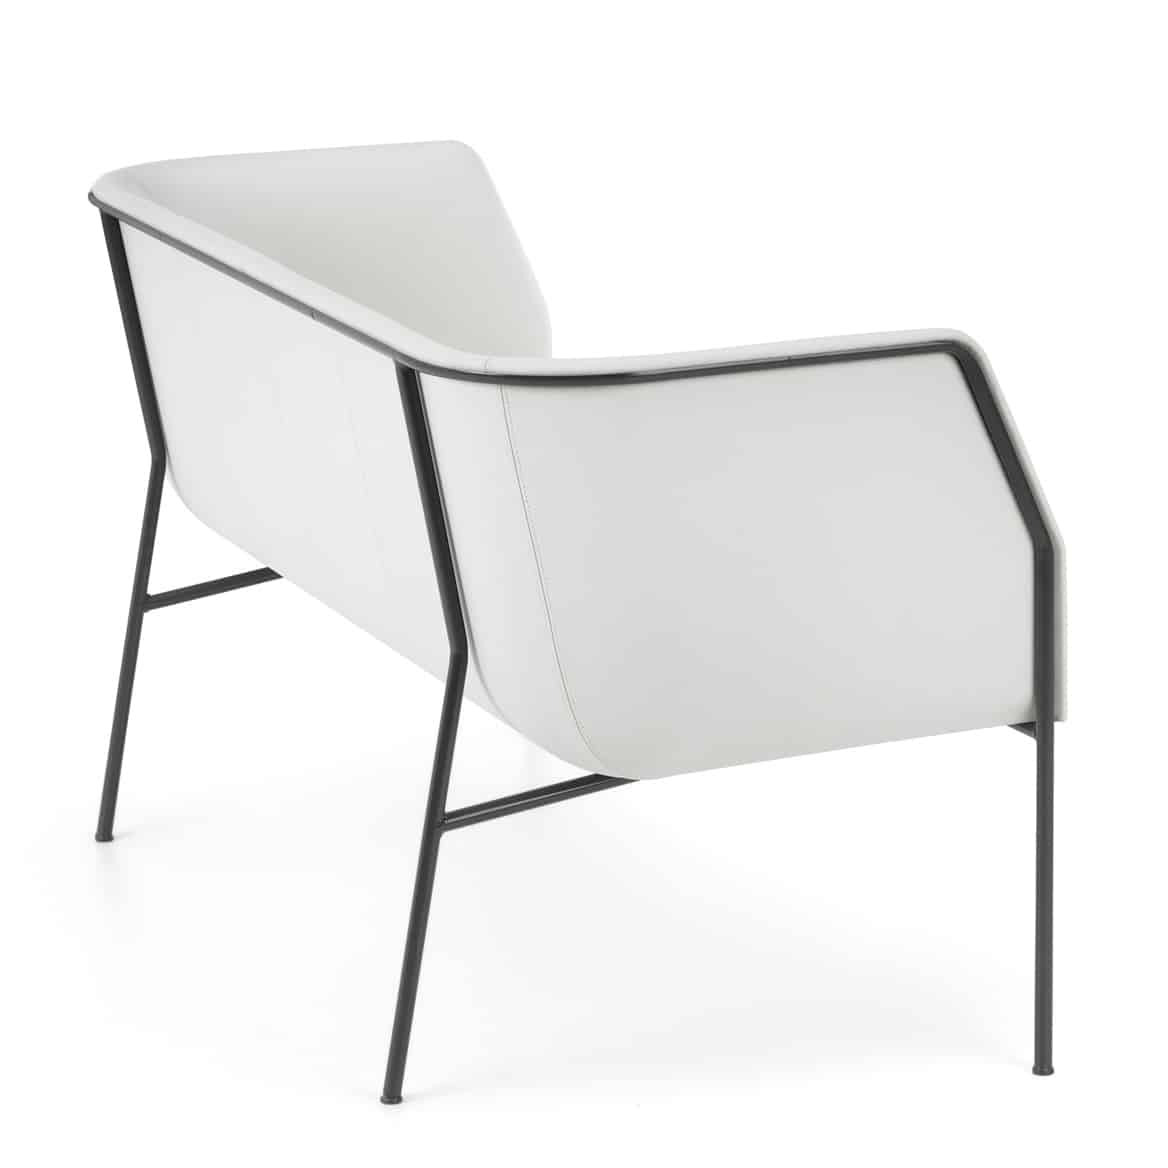 Cajal u2013 Lammhults Scandinavian Design